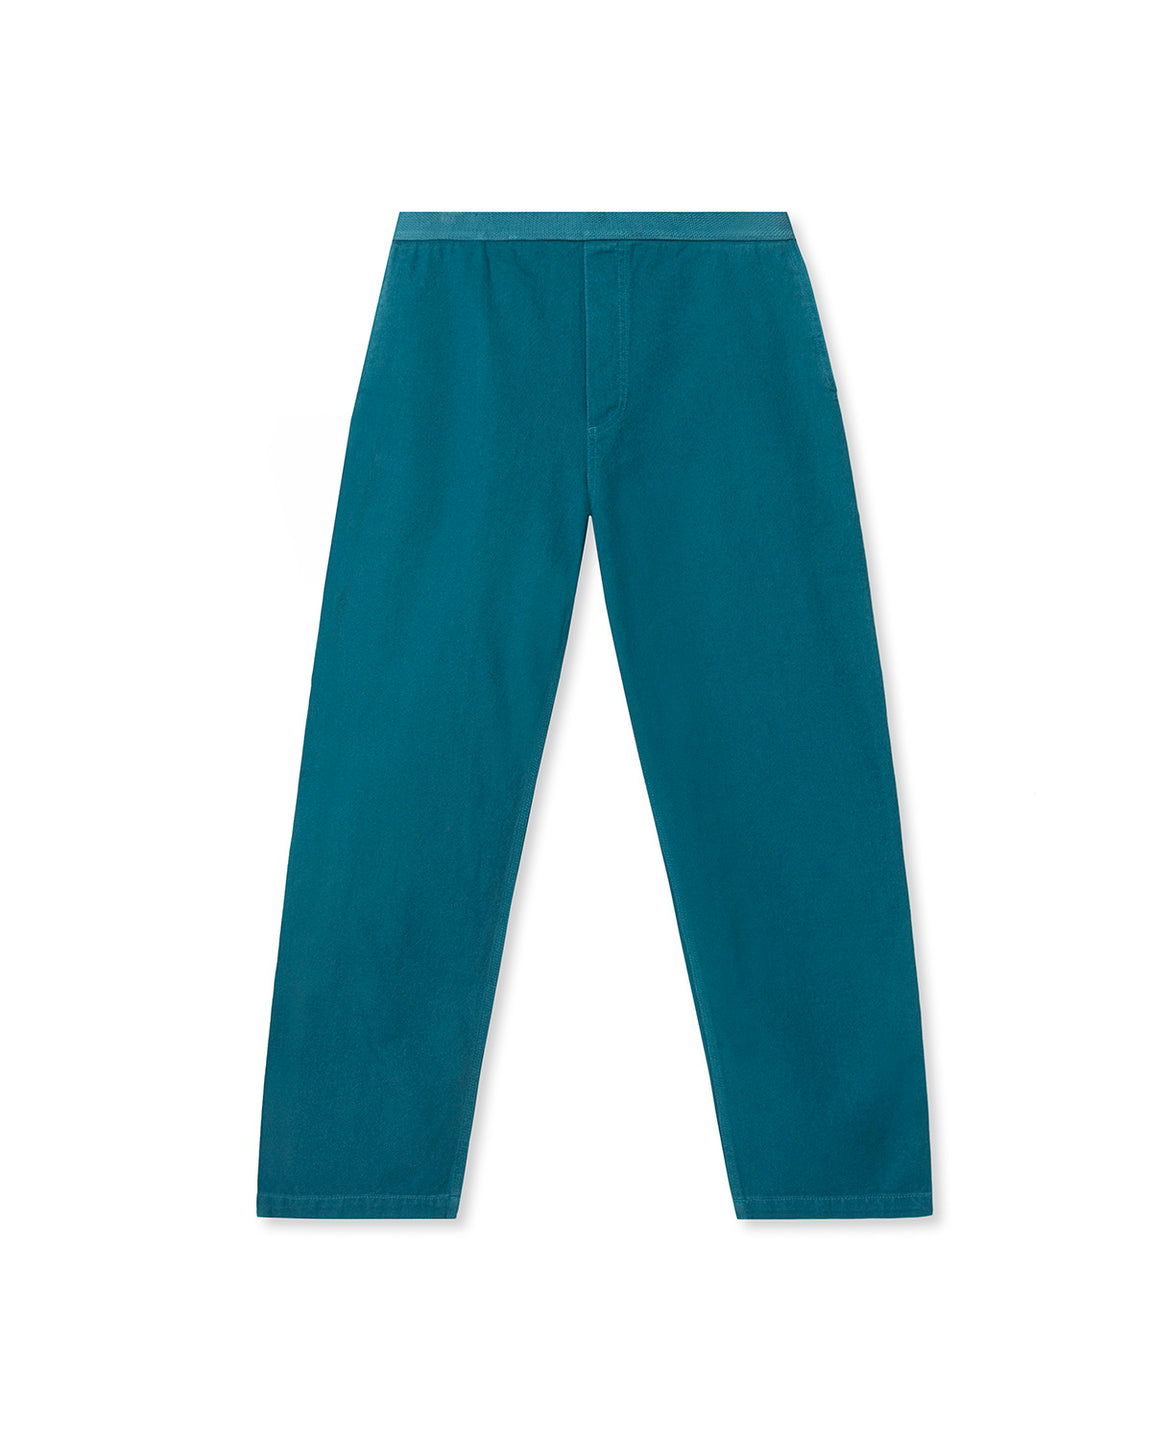 Washed Hard Ware/ Soft Wear Carpenter Pant - Teal